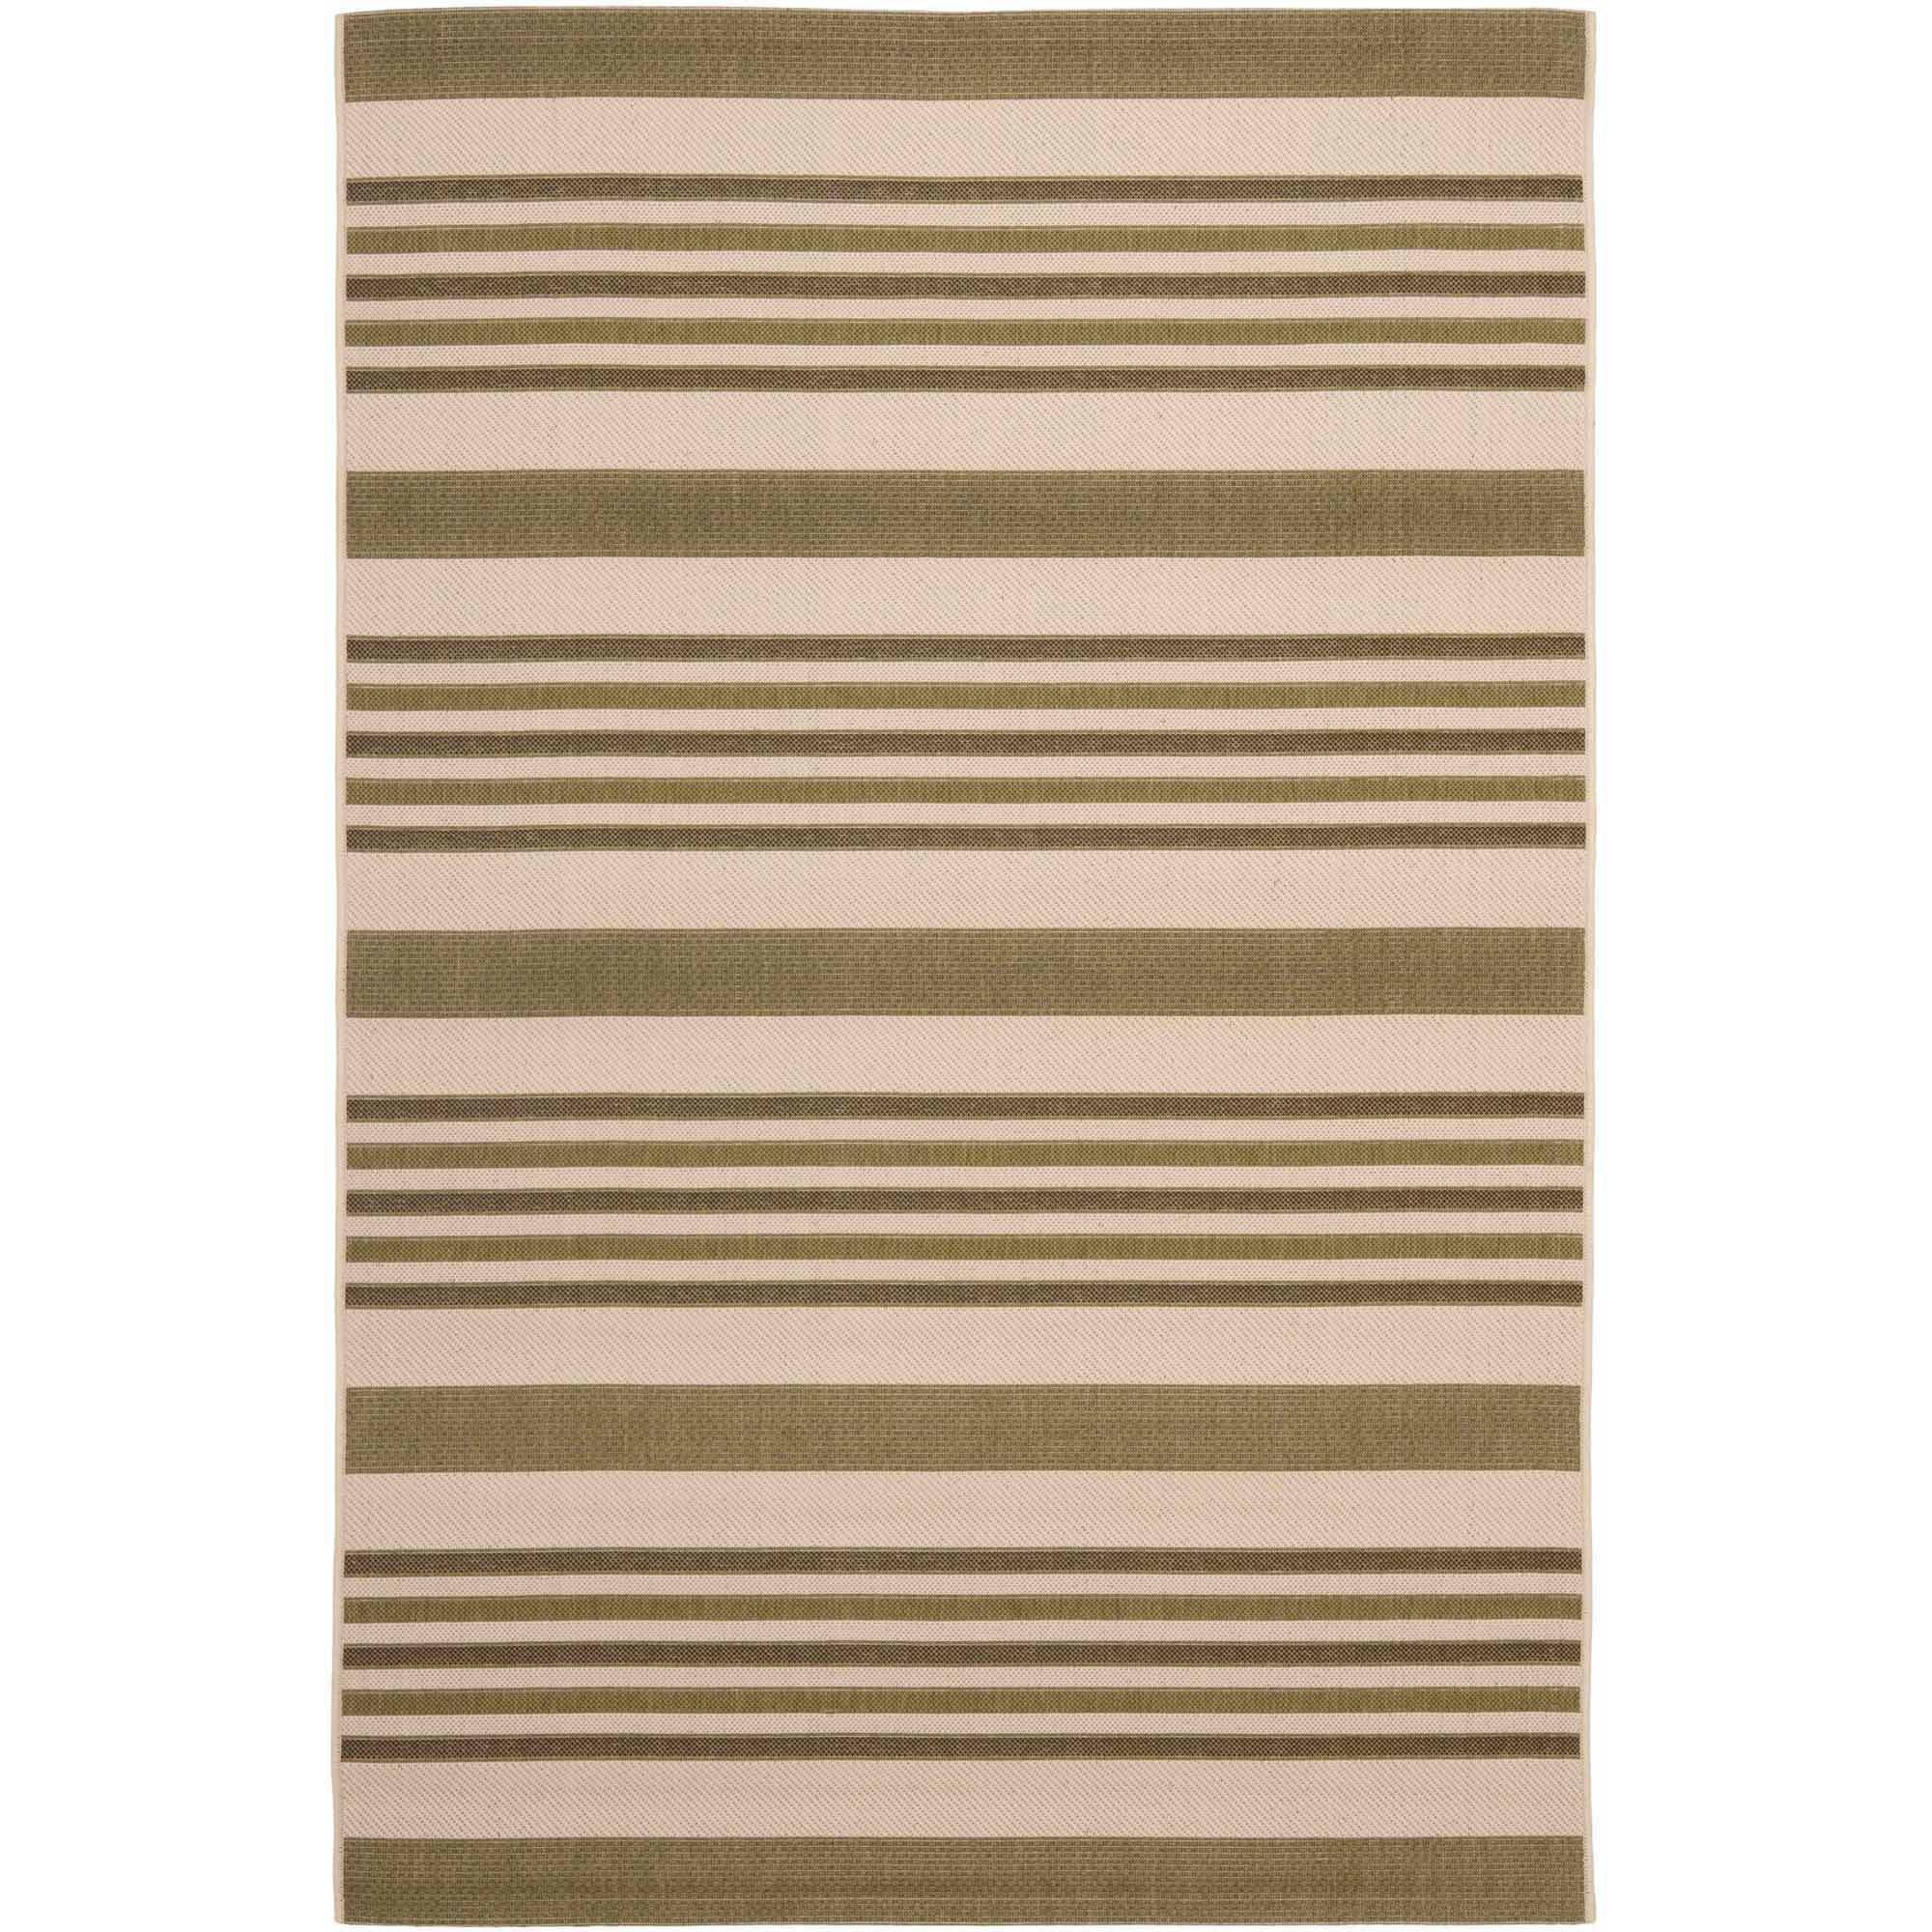 Safavieh Courtyard Denholm 5u0027 X 8u0027 Power Loomed Area Rug, Beige/Green